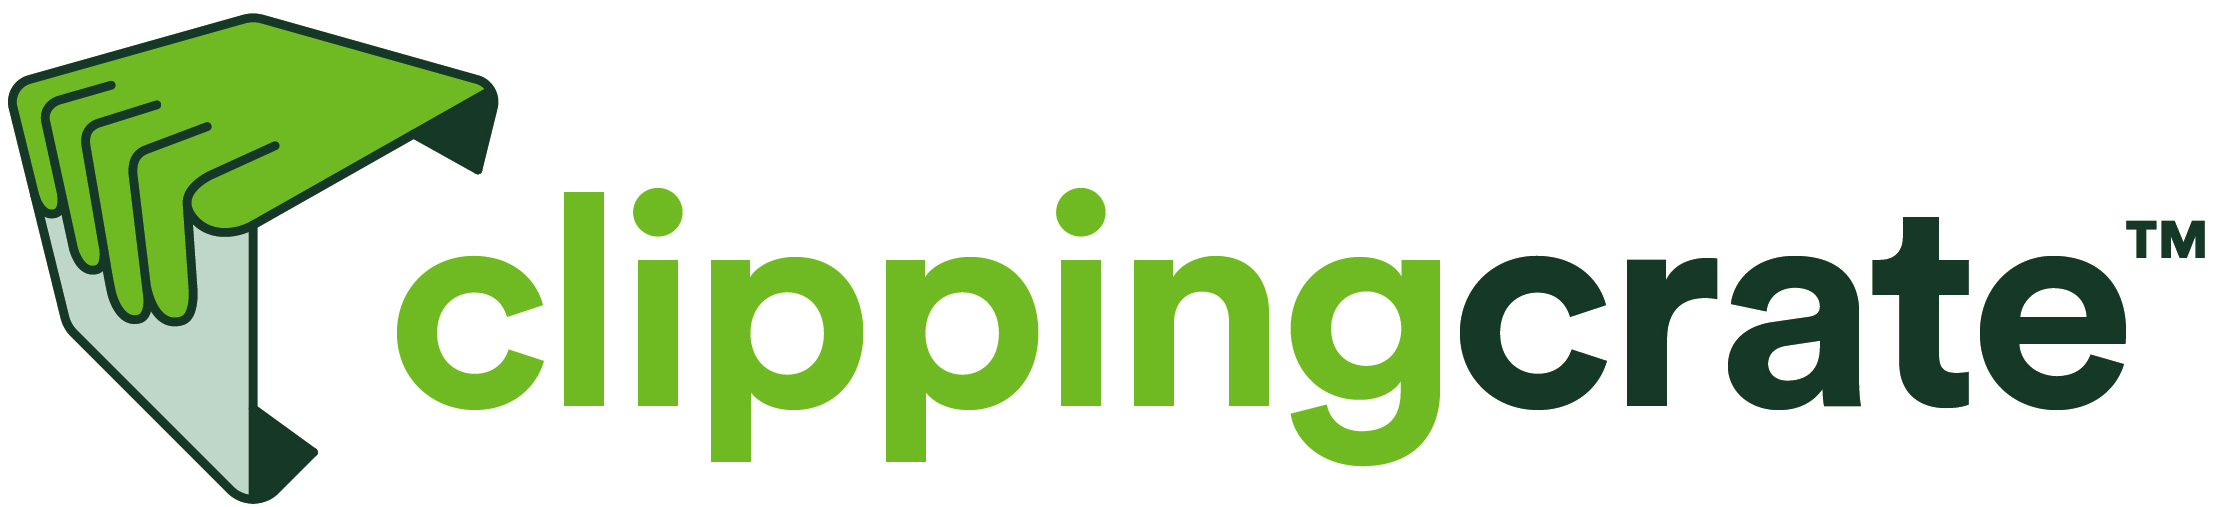 logotipo clippingcreate